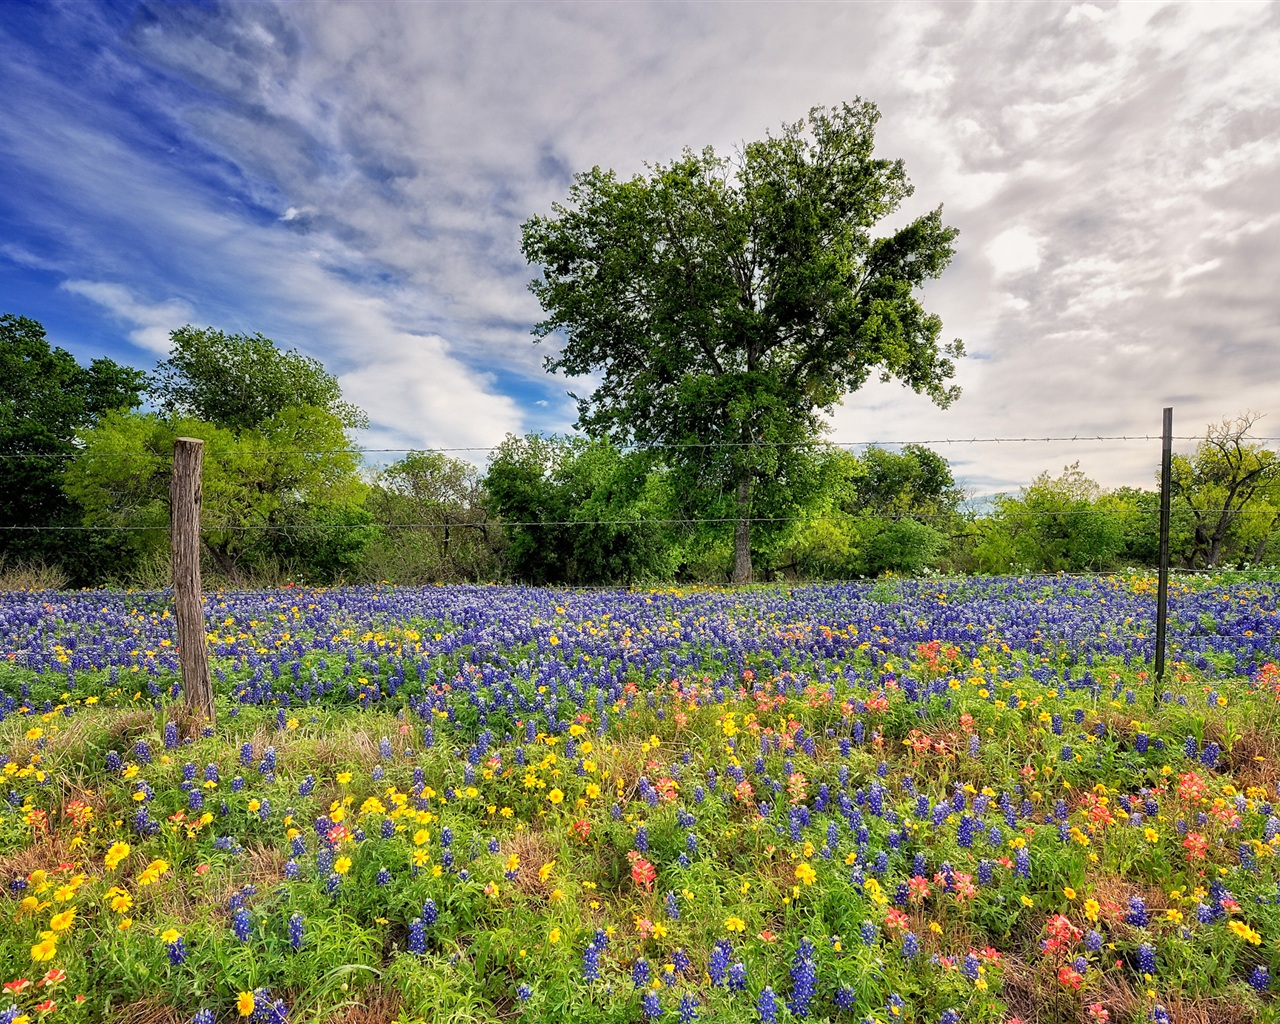 pictures of landscapes wildflowers wallpaper 1280x1024 resolution 11342